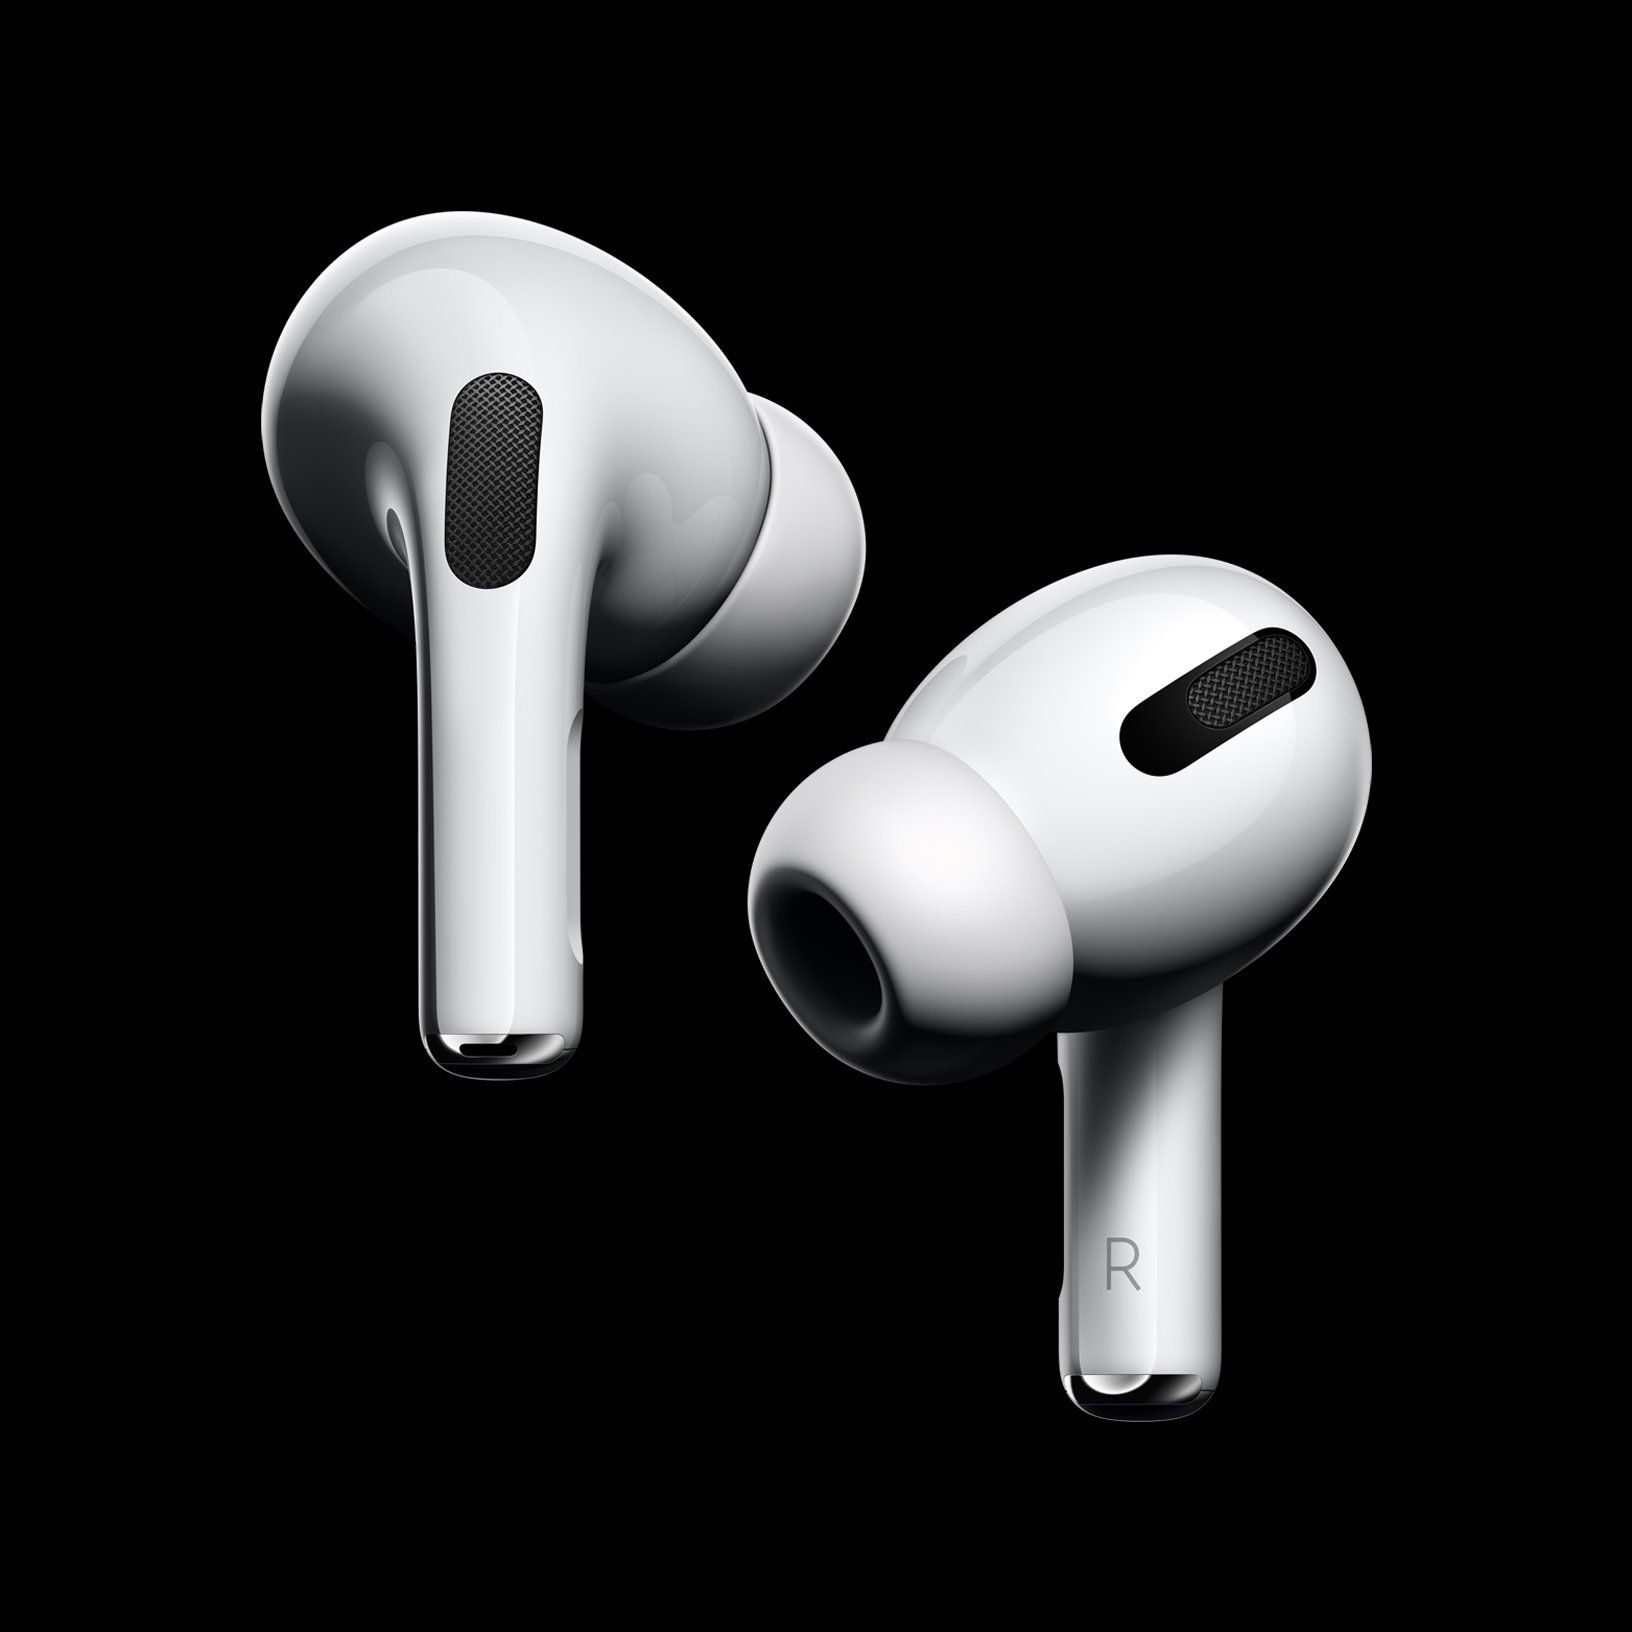 Apple Debuts Higher End Airpods With Noise Cancellation And Water Resistance Airpods Pro Noise Cancelling Earbuds